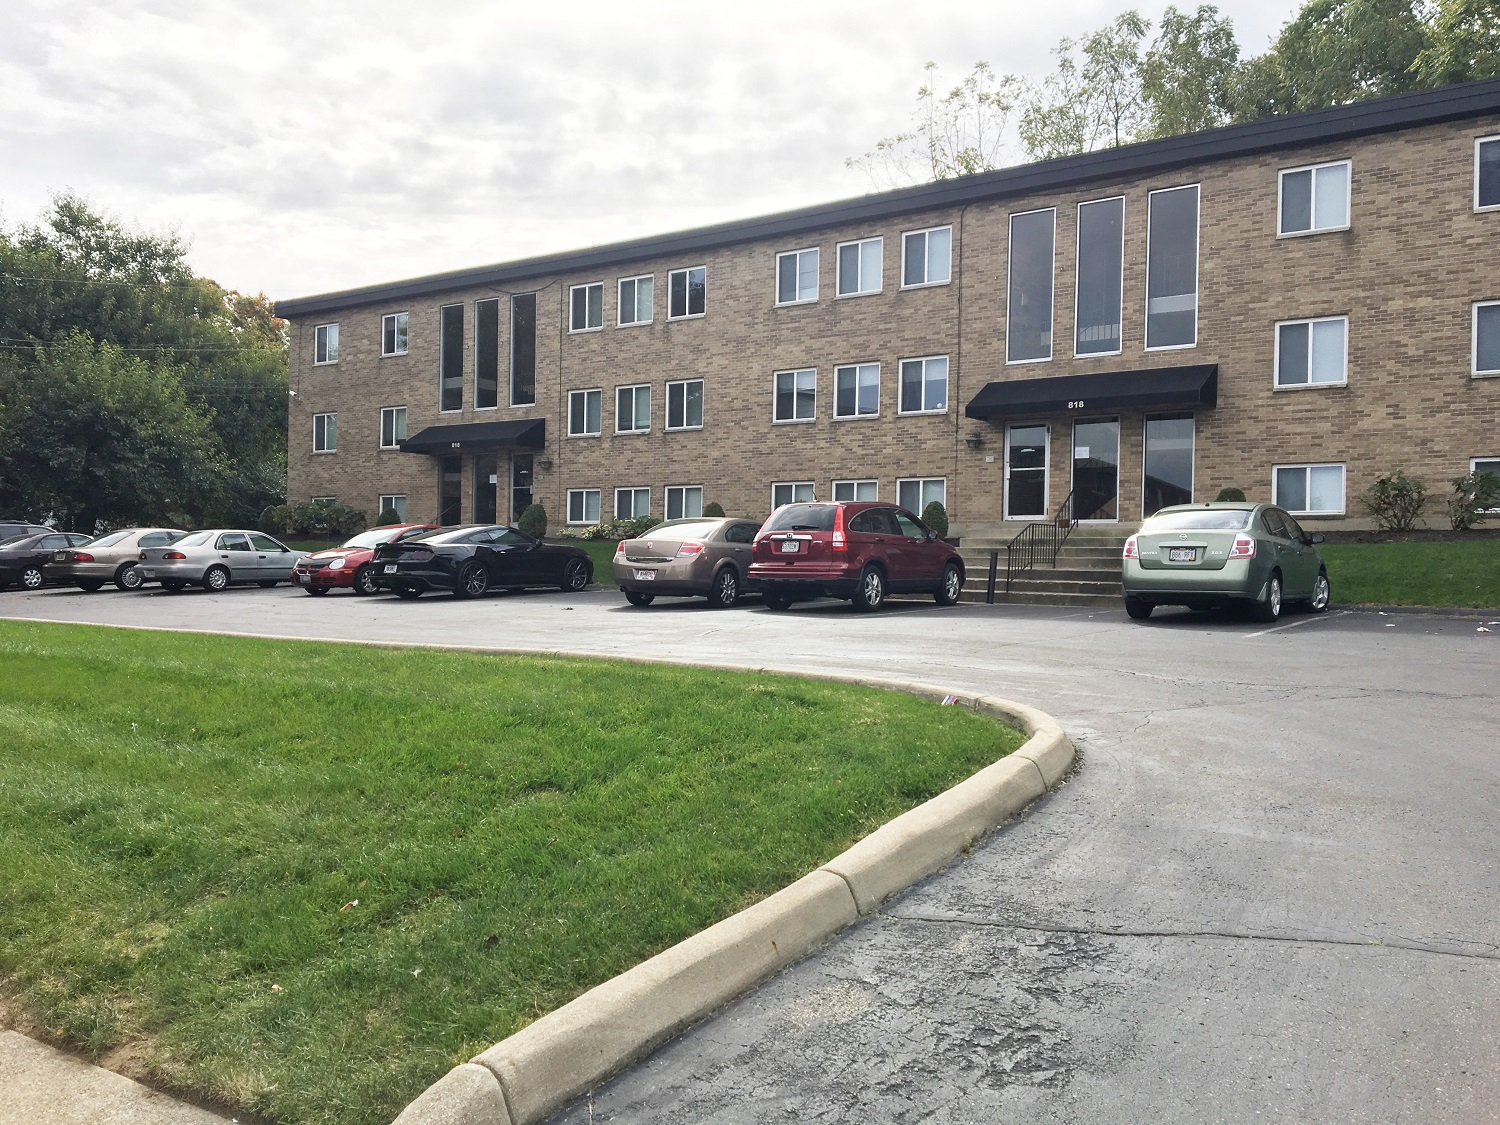 818 fourman court studio1 bed apartment for rent photo gallery 1 - 4 Bedroom Houses For Rent In Dayton Ohio